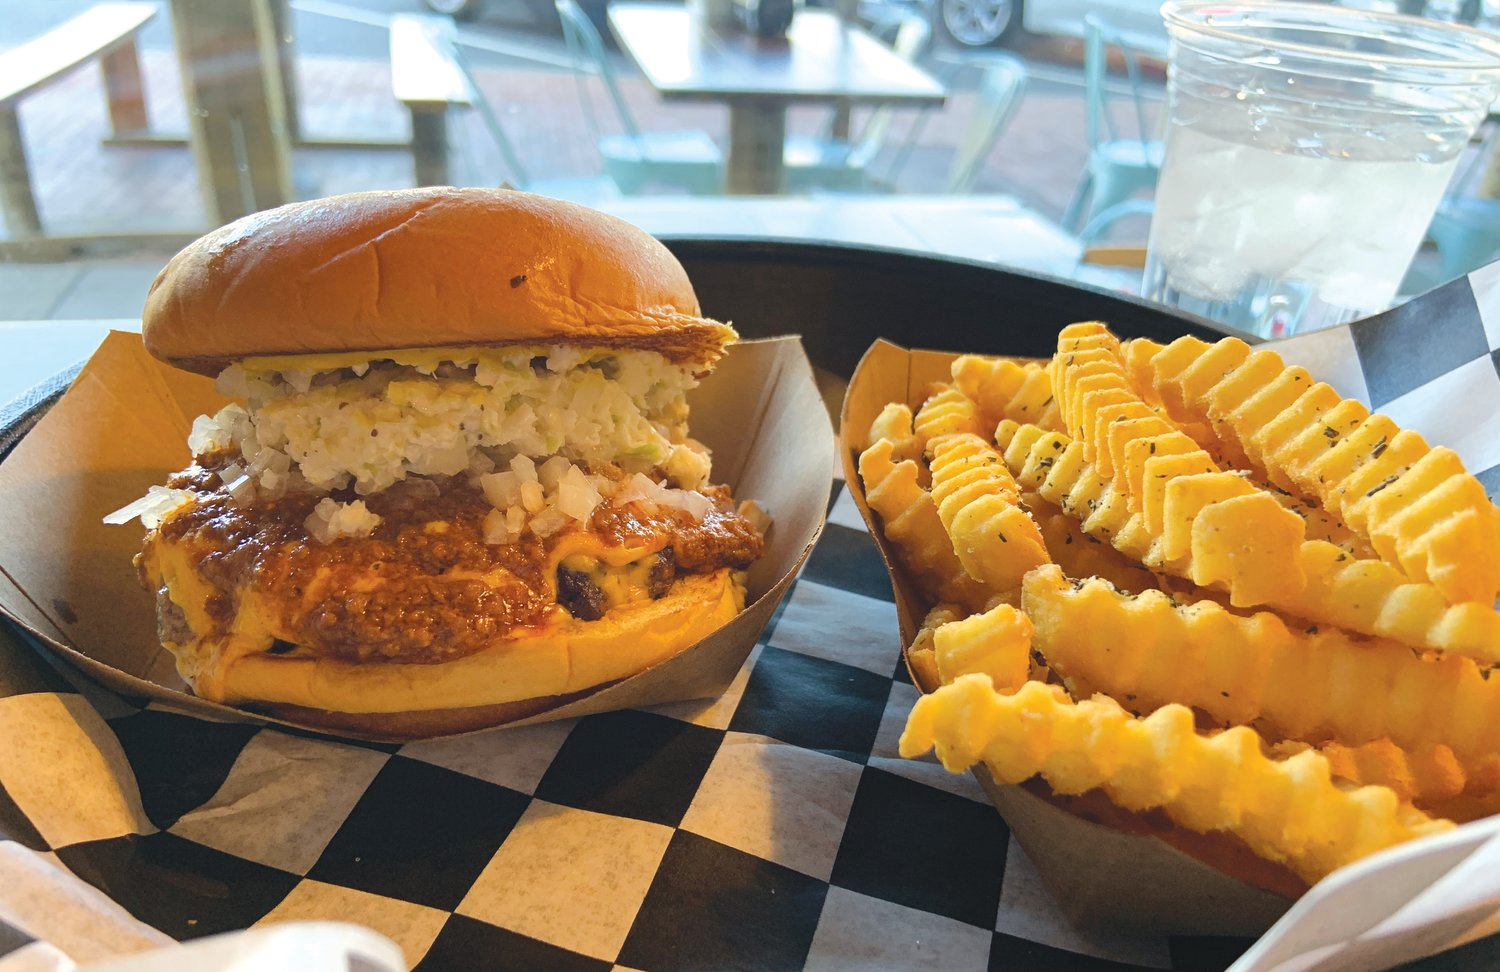 Pictured is the Bobo Chili Cheese burger — one patty stacked with chili, slaw, chopped onions, cheese and mustard — at Al's Burger Shack, a local chain based out of Chapel Hill. The restaurant filed for bankruptcy for its three locations two weeks ago, but plans to continue to expand during its reorganization process.